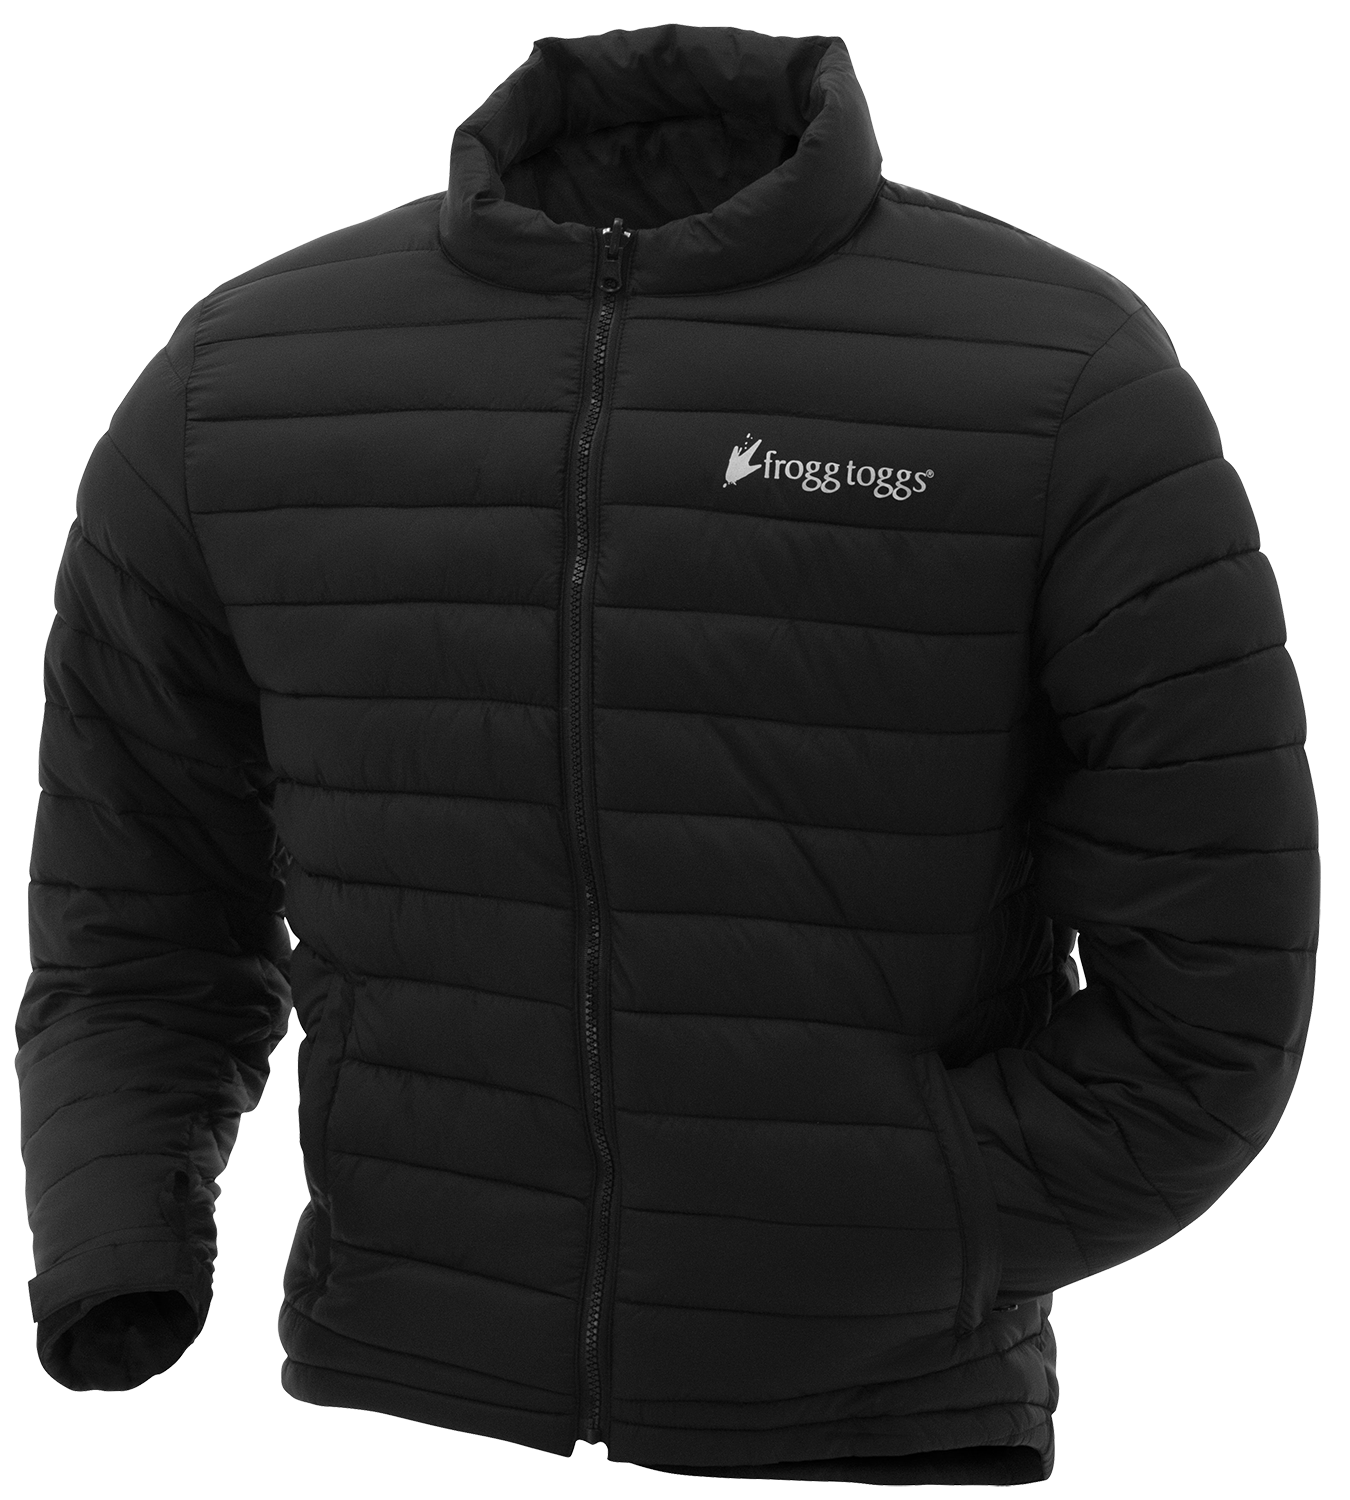 Giacca Co-Pilot Insulated Puff Jacket  - FROGG TOGGS